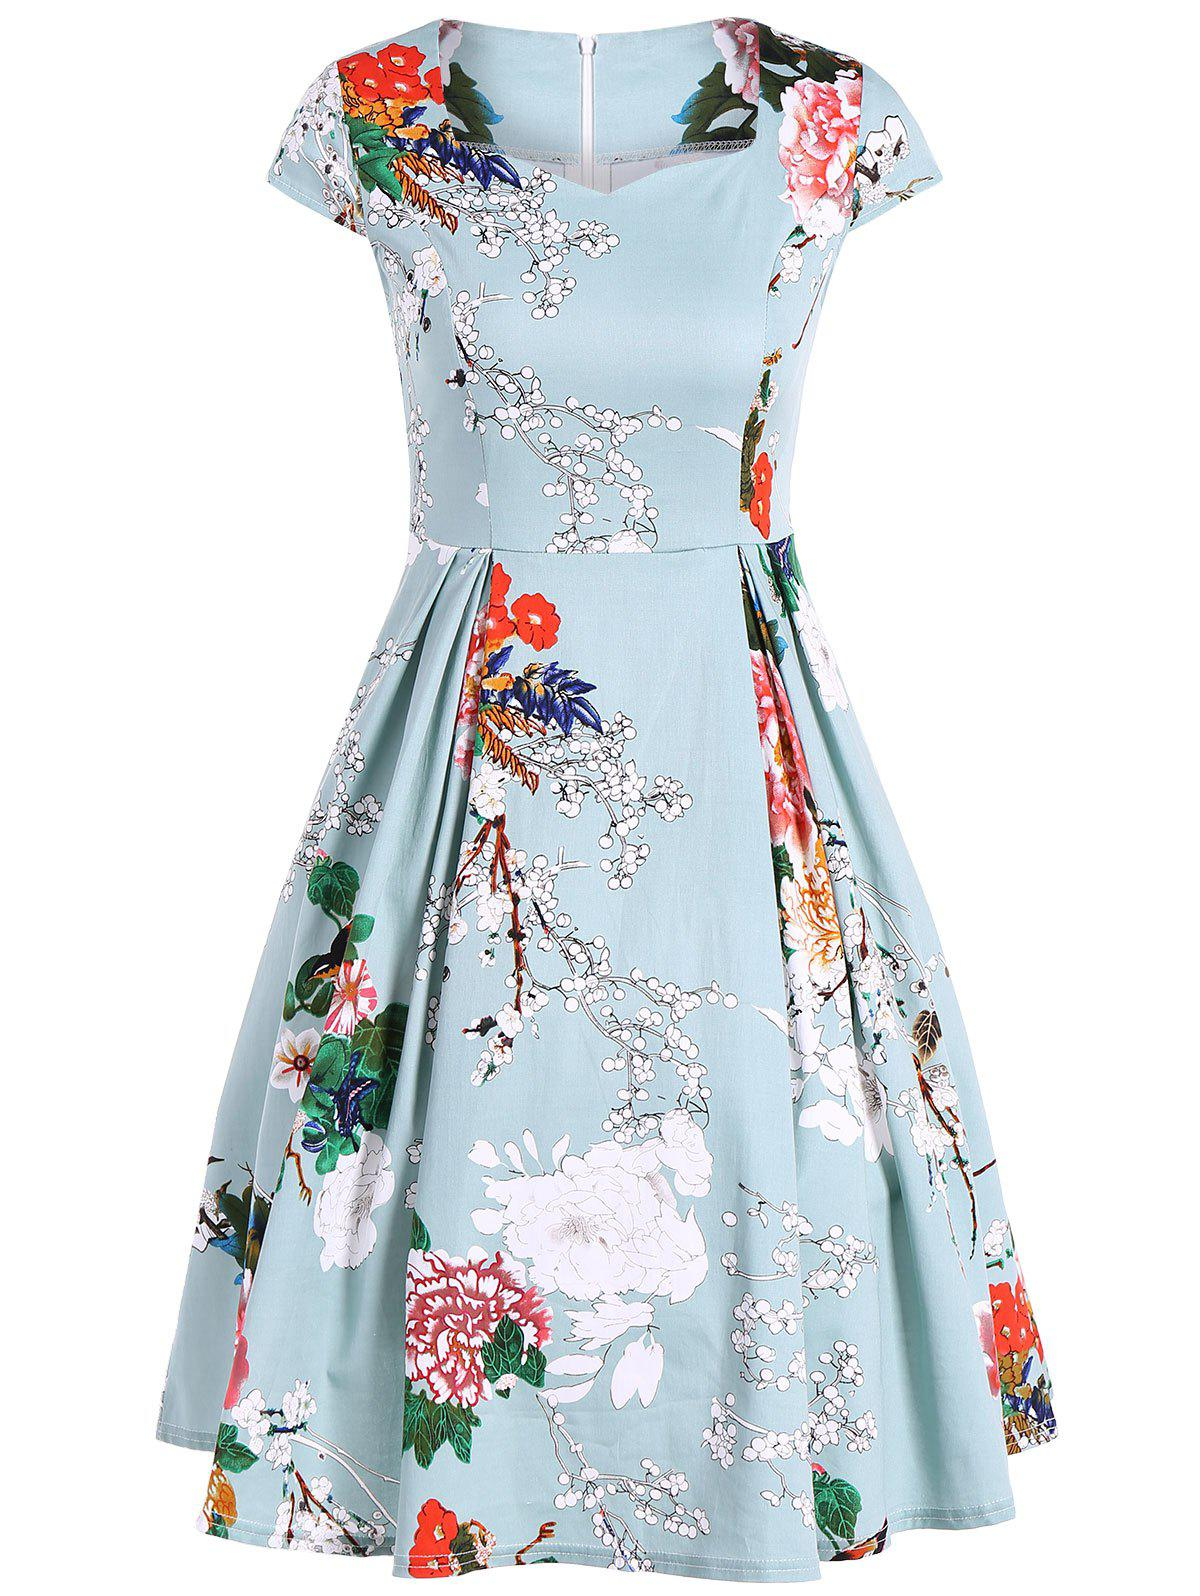 Vintage Swing Sweetheart Neck Floral Print DressWOMEN<br><br>Size: 2XL; Color: LIGHT GREEN; Style: Vintage; Material: Polyester; Silhouette: A-Line; Dresses Length: Knee-Length; Neckline: Sweetheart Neck; Sleeve Length: Short Sleeves; Pattern Type: Floral; With Belt: No; Season: Summer; Weight: 0.370kg; Package Contents: 1 x Dress;